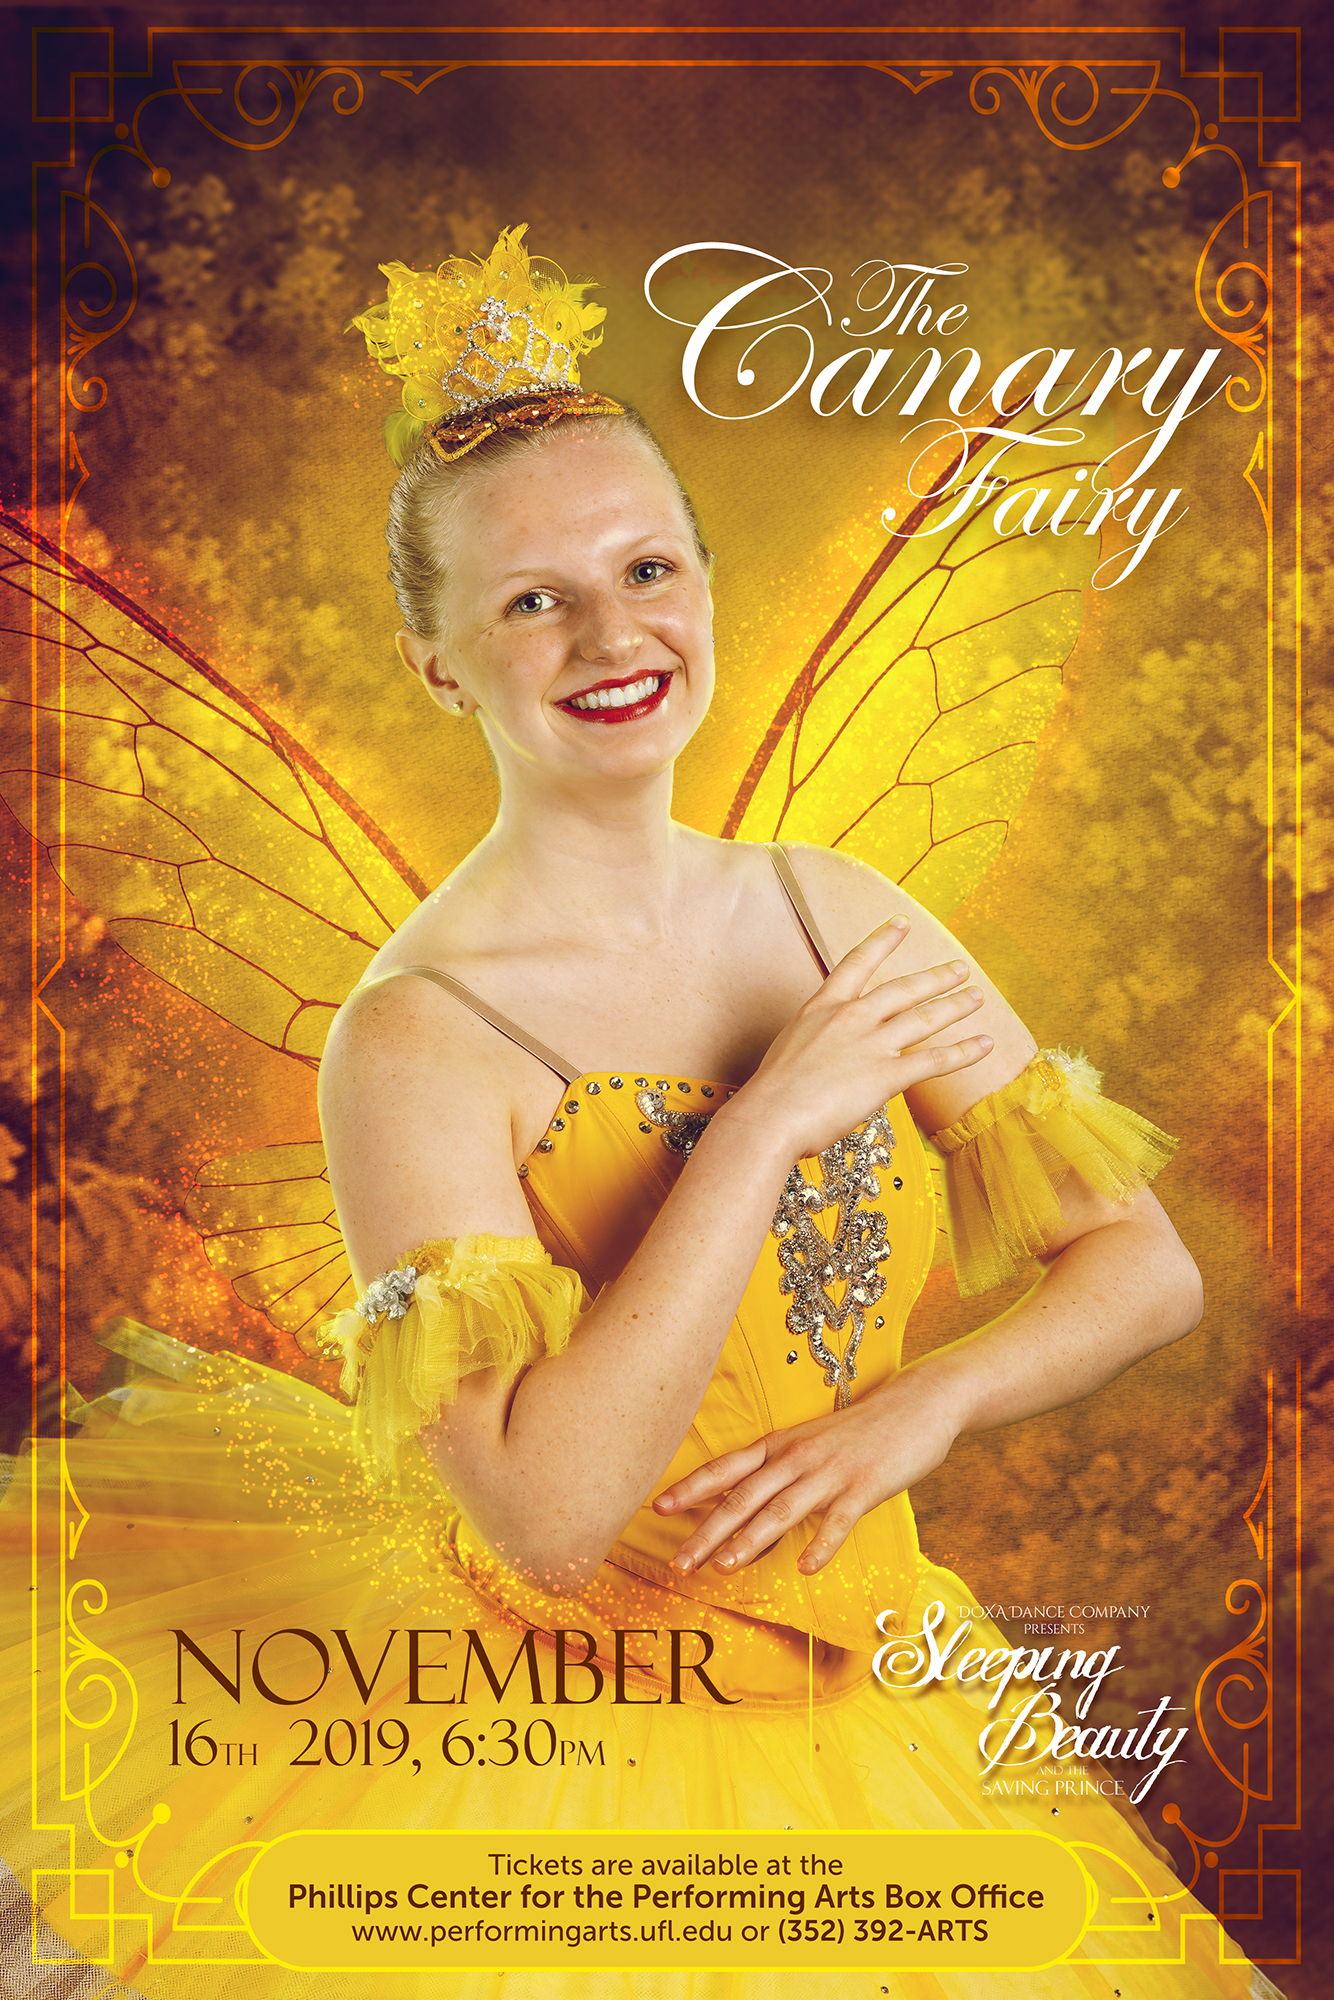 Canary-Fairy-2019-poster-2000x